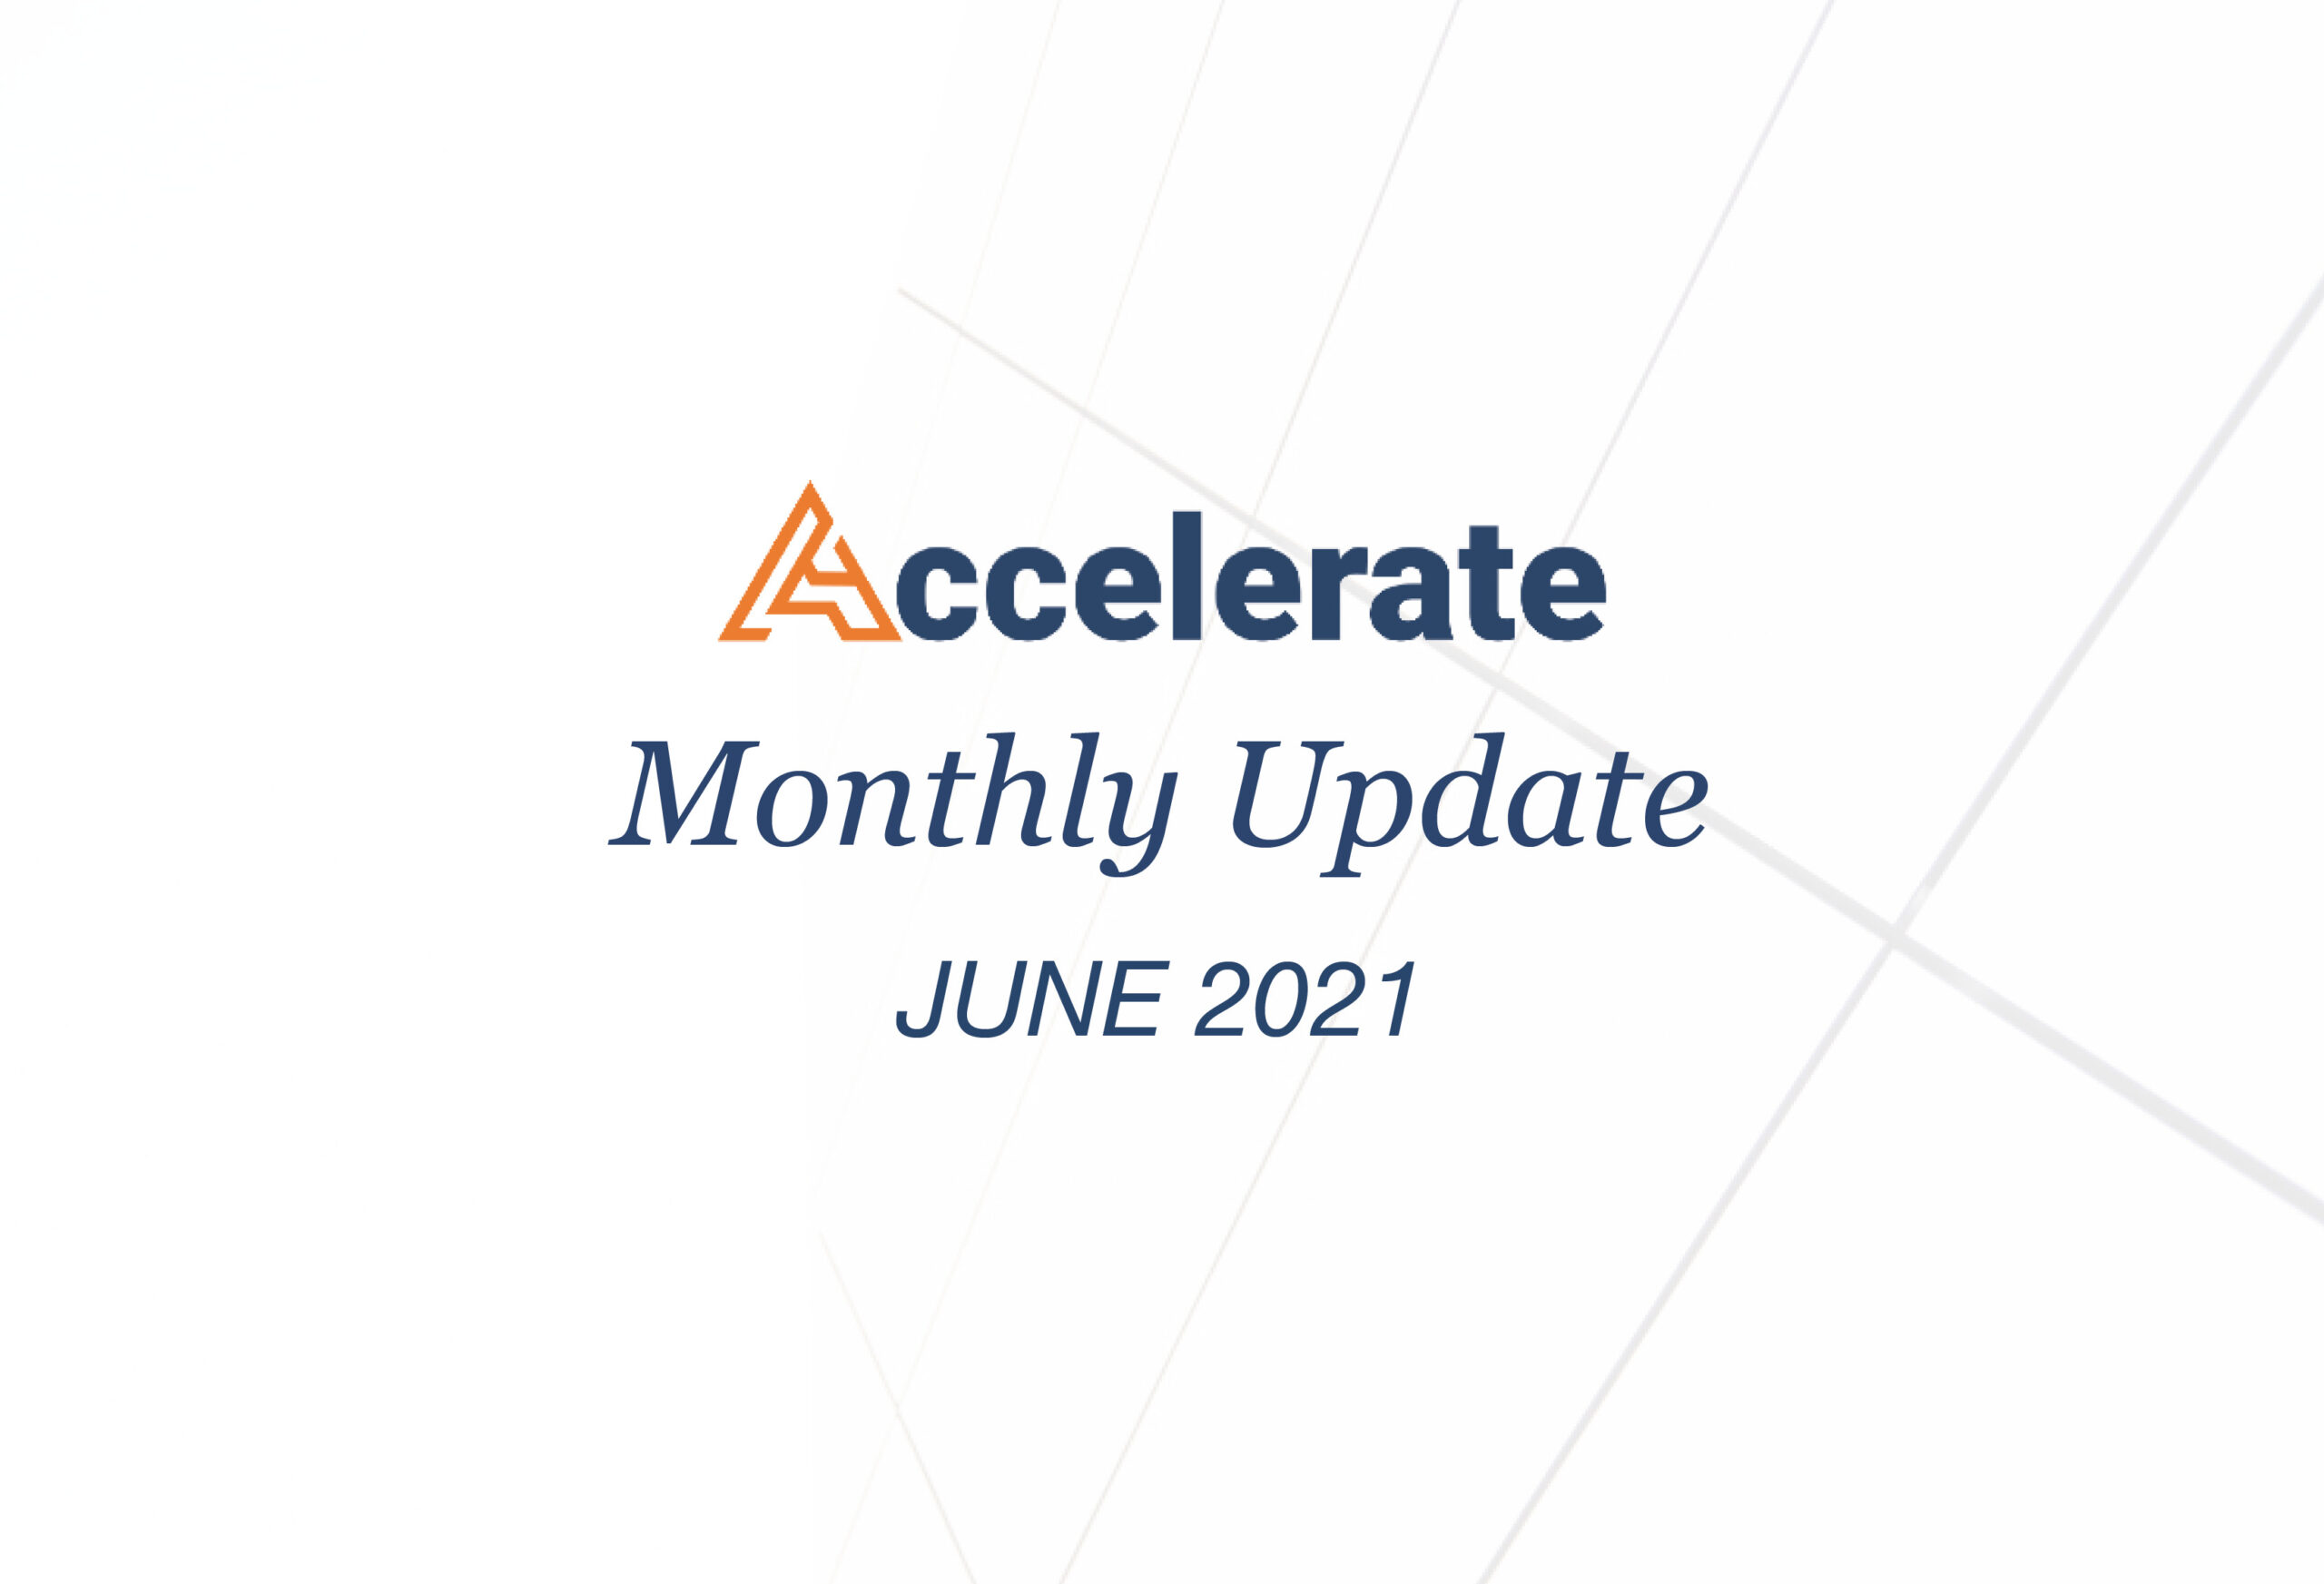 Accelerate Monthly Update – June 2021